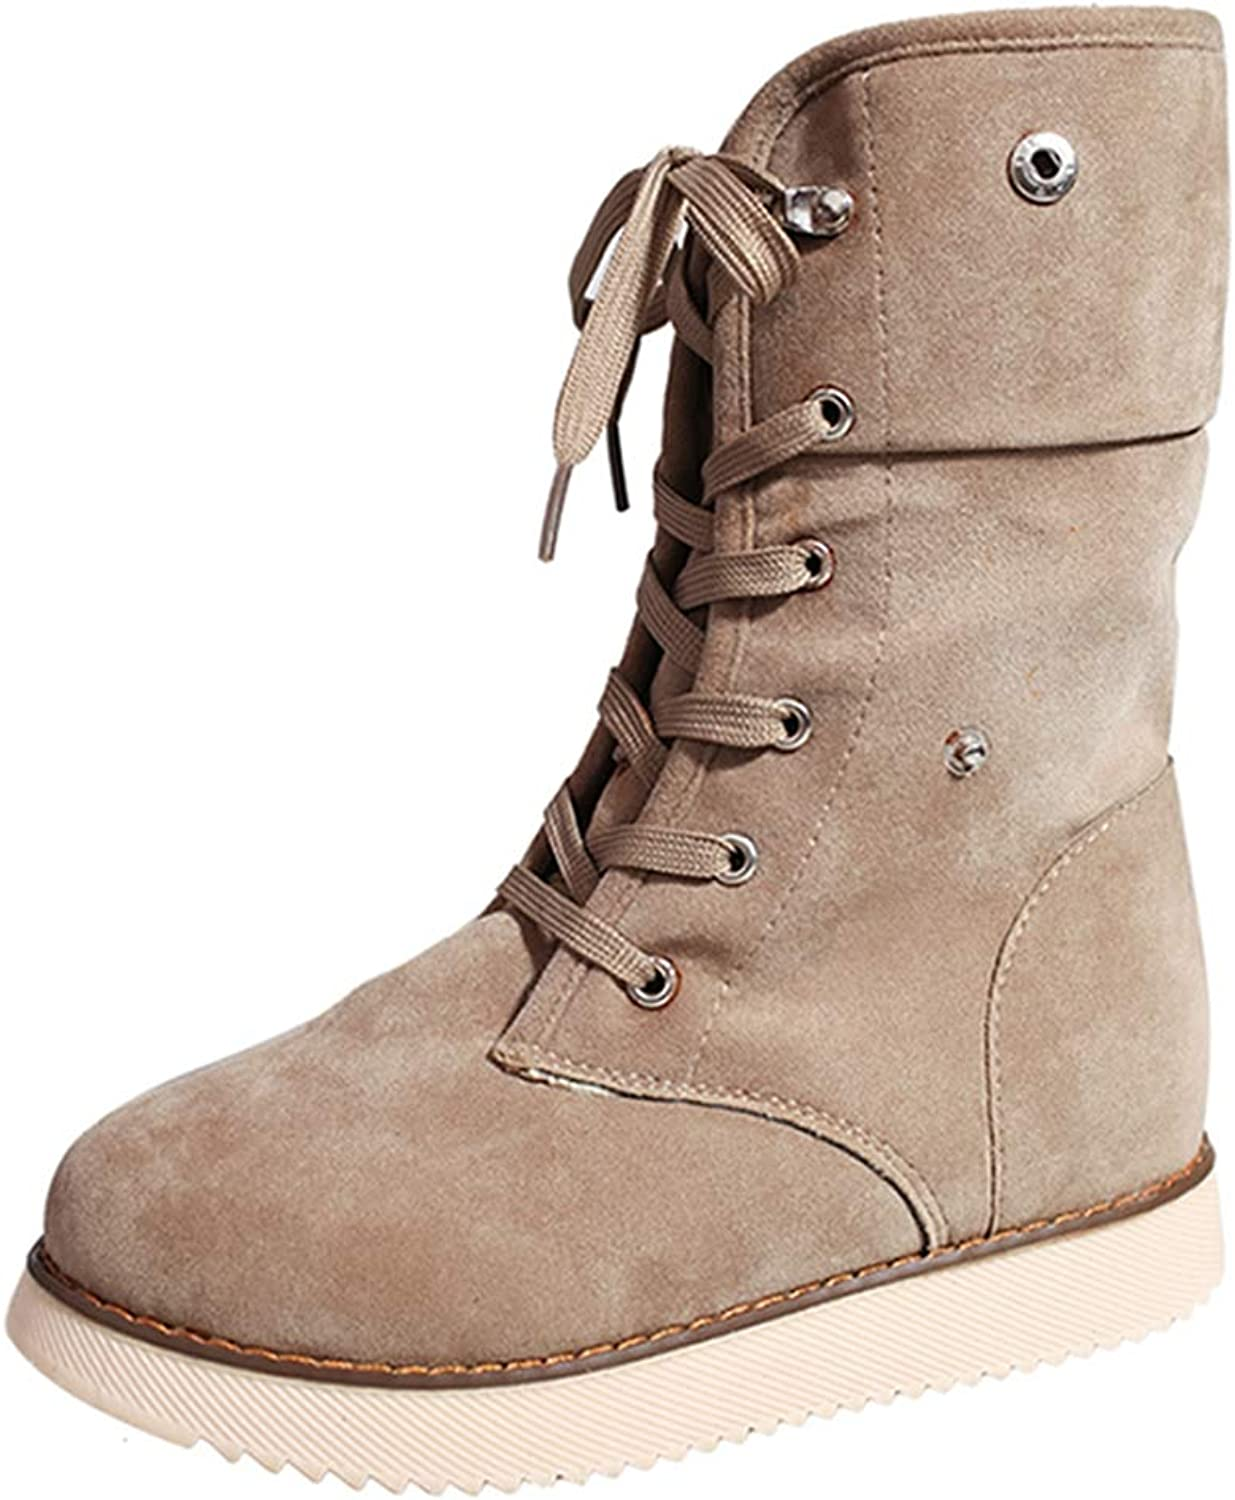 Women's Fashion Suede Lace Up Cross Tied Waterproof Winter Mid Calf High Snow Boots